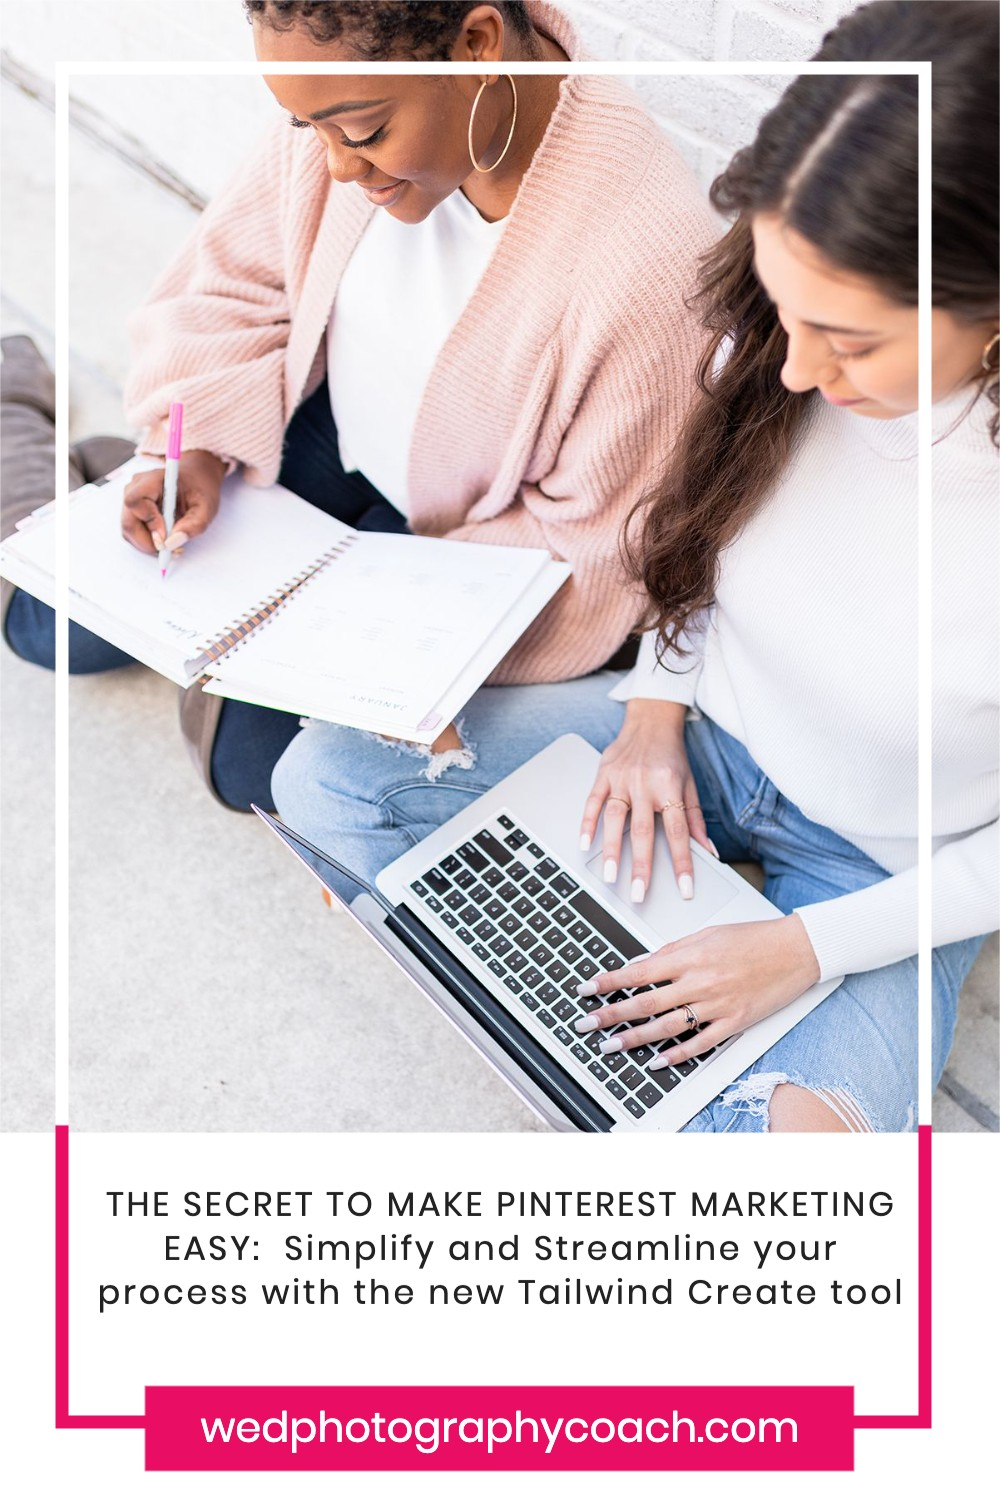 THE SECRET TO MAKE PINTEREST MARKETING EASY:  Simplify and Streamline your process with the new Tailwind Create.  This is how easy it is.  Read or watch the video to learn all about it.